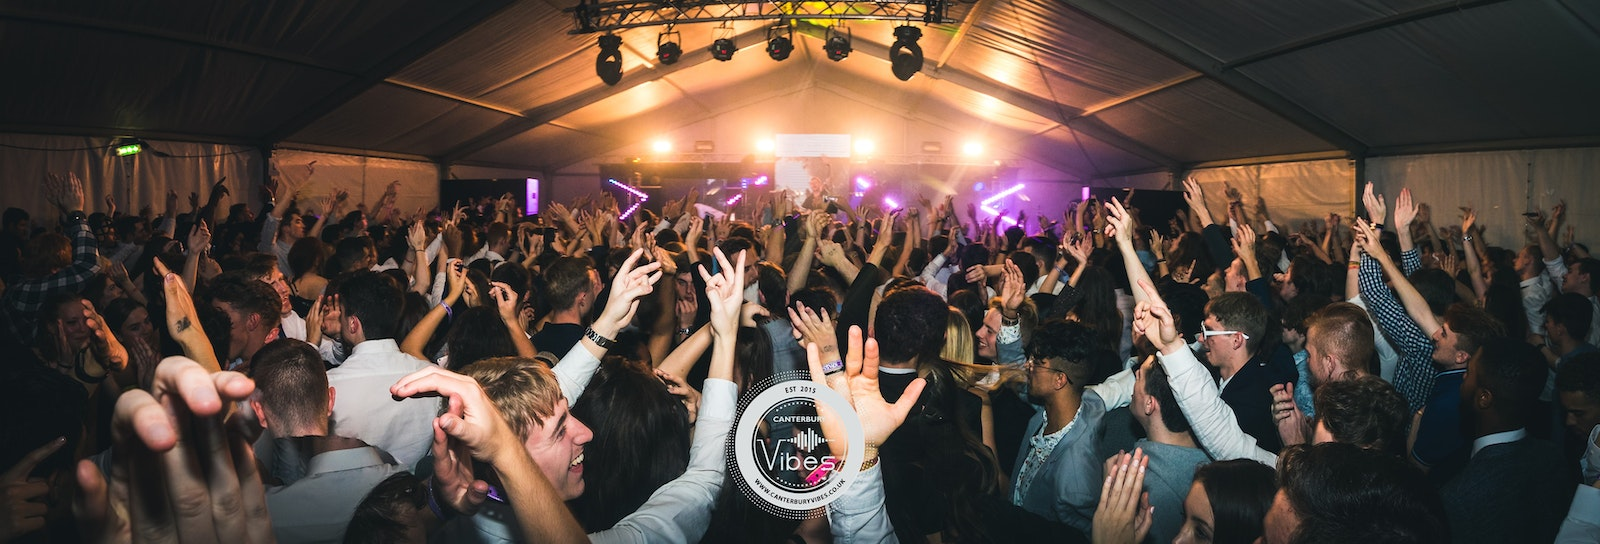 FIRST PARTY BACK IN CANTERBURY – LOCATION & DATE WILL BE ANNOUNCED IN DUE COURSE!